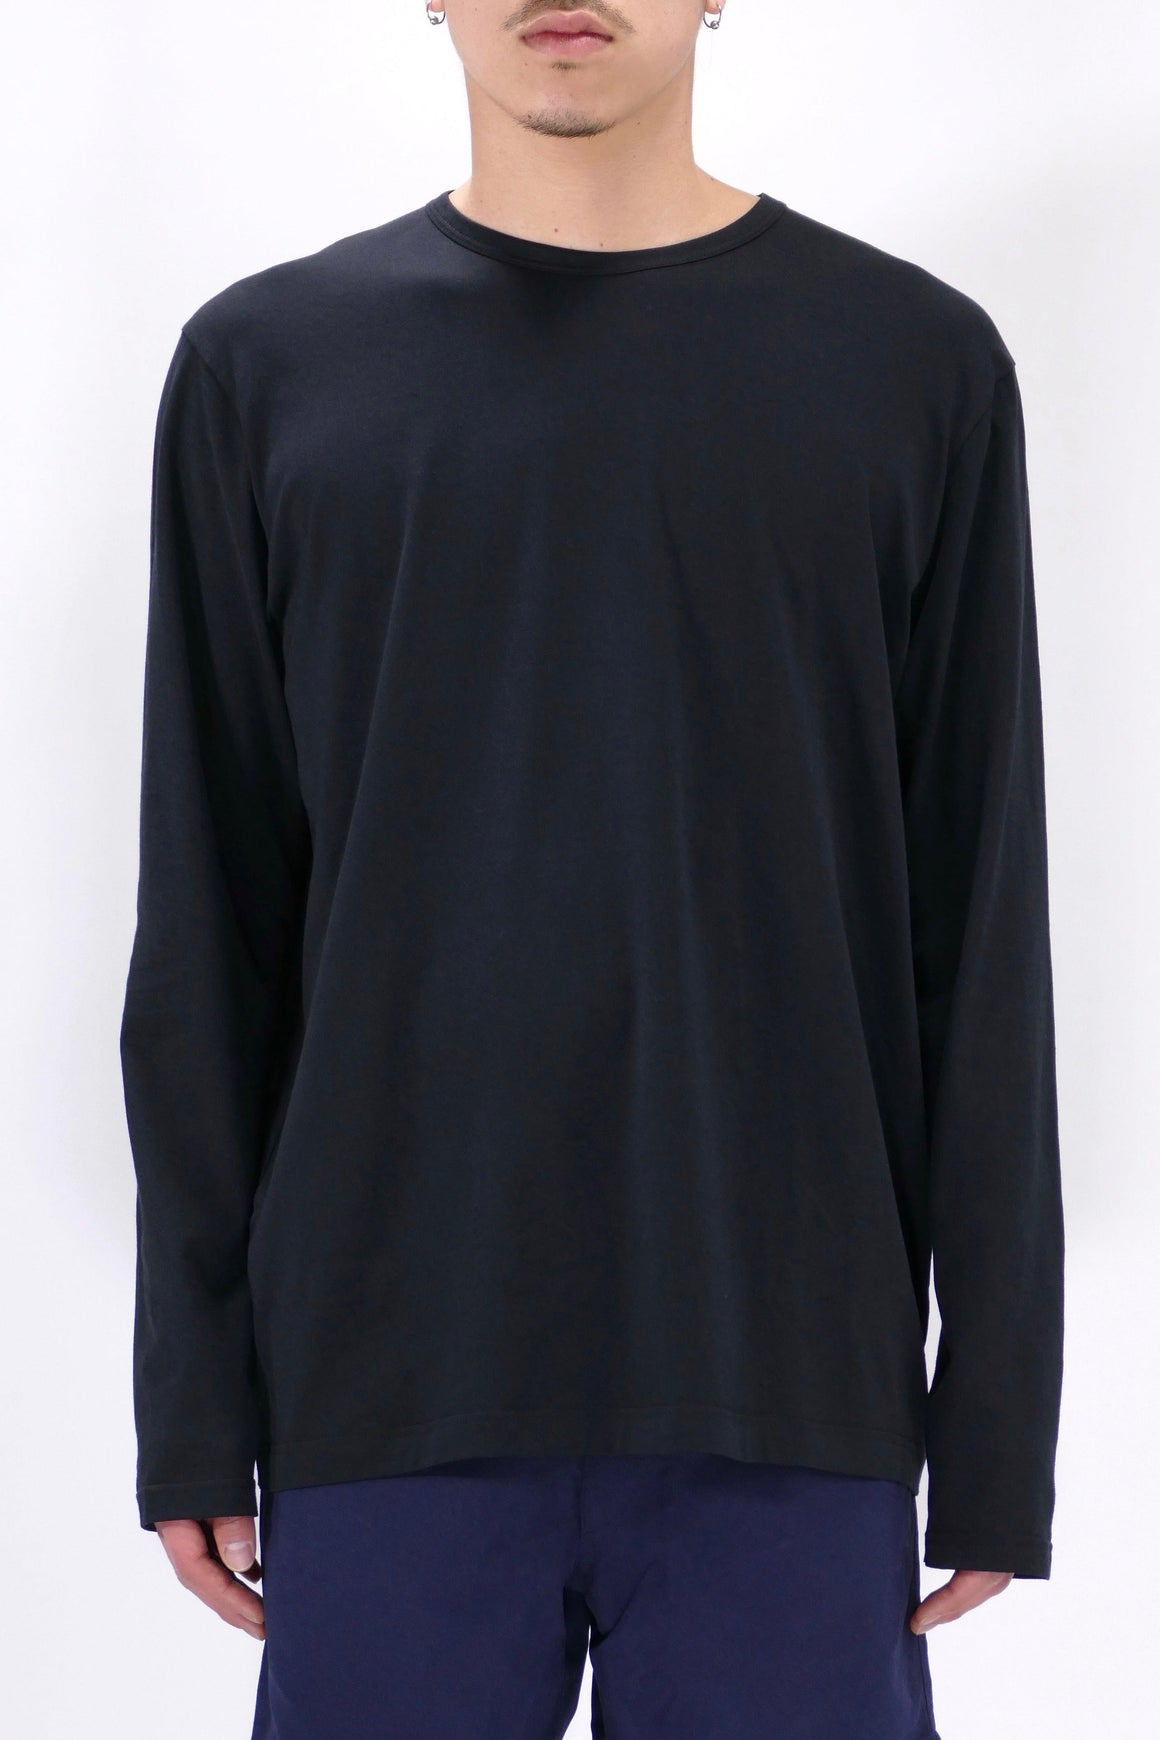 Sunspel Long Sleeve Crewneck Black